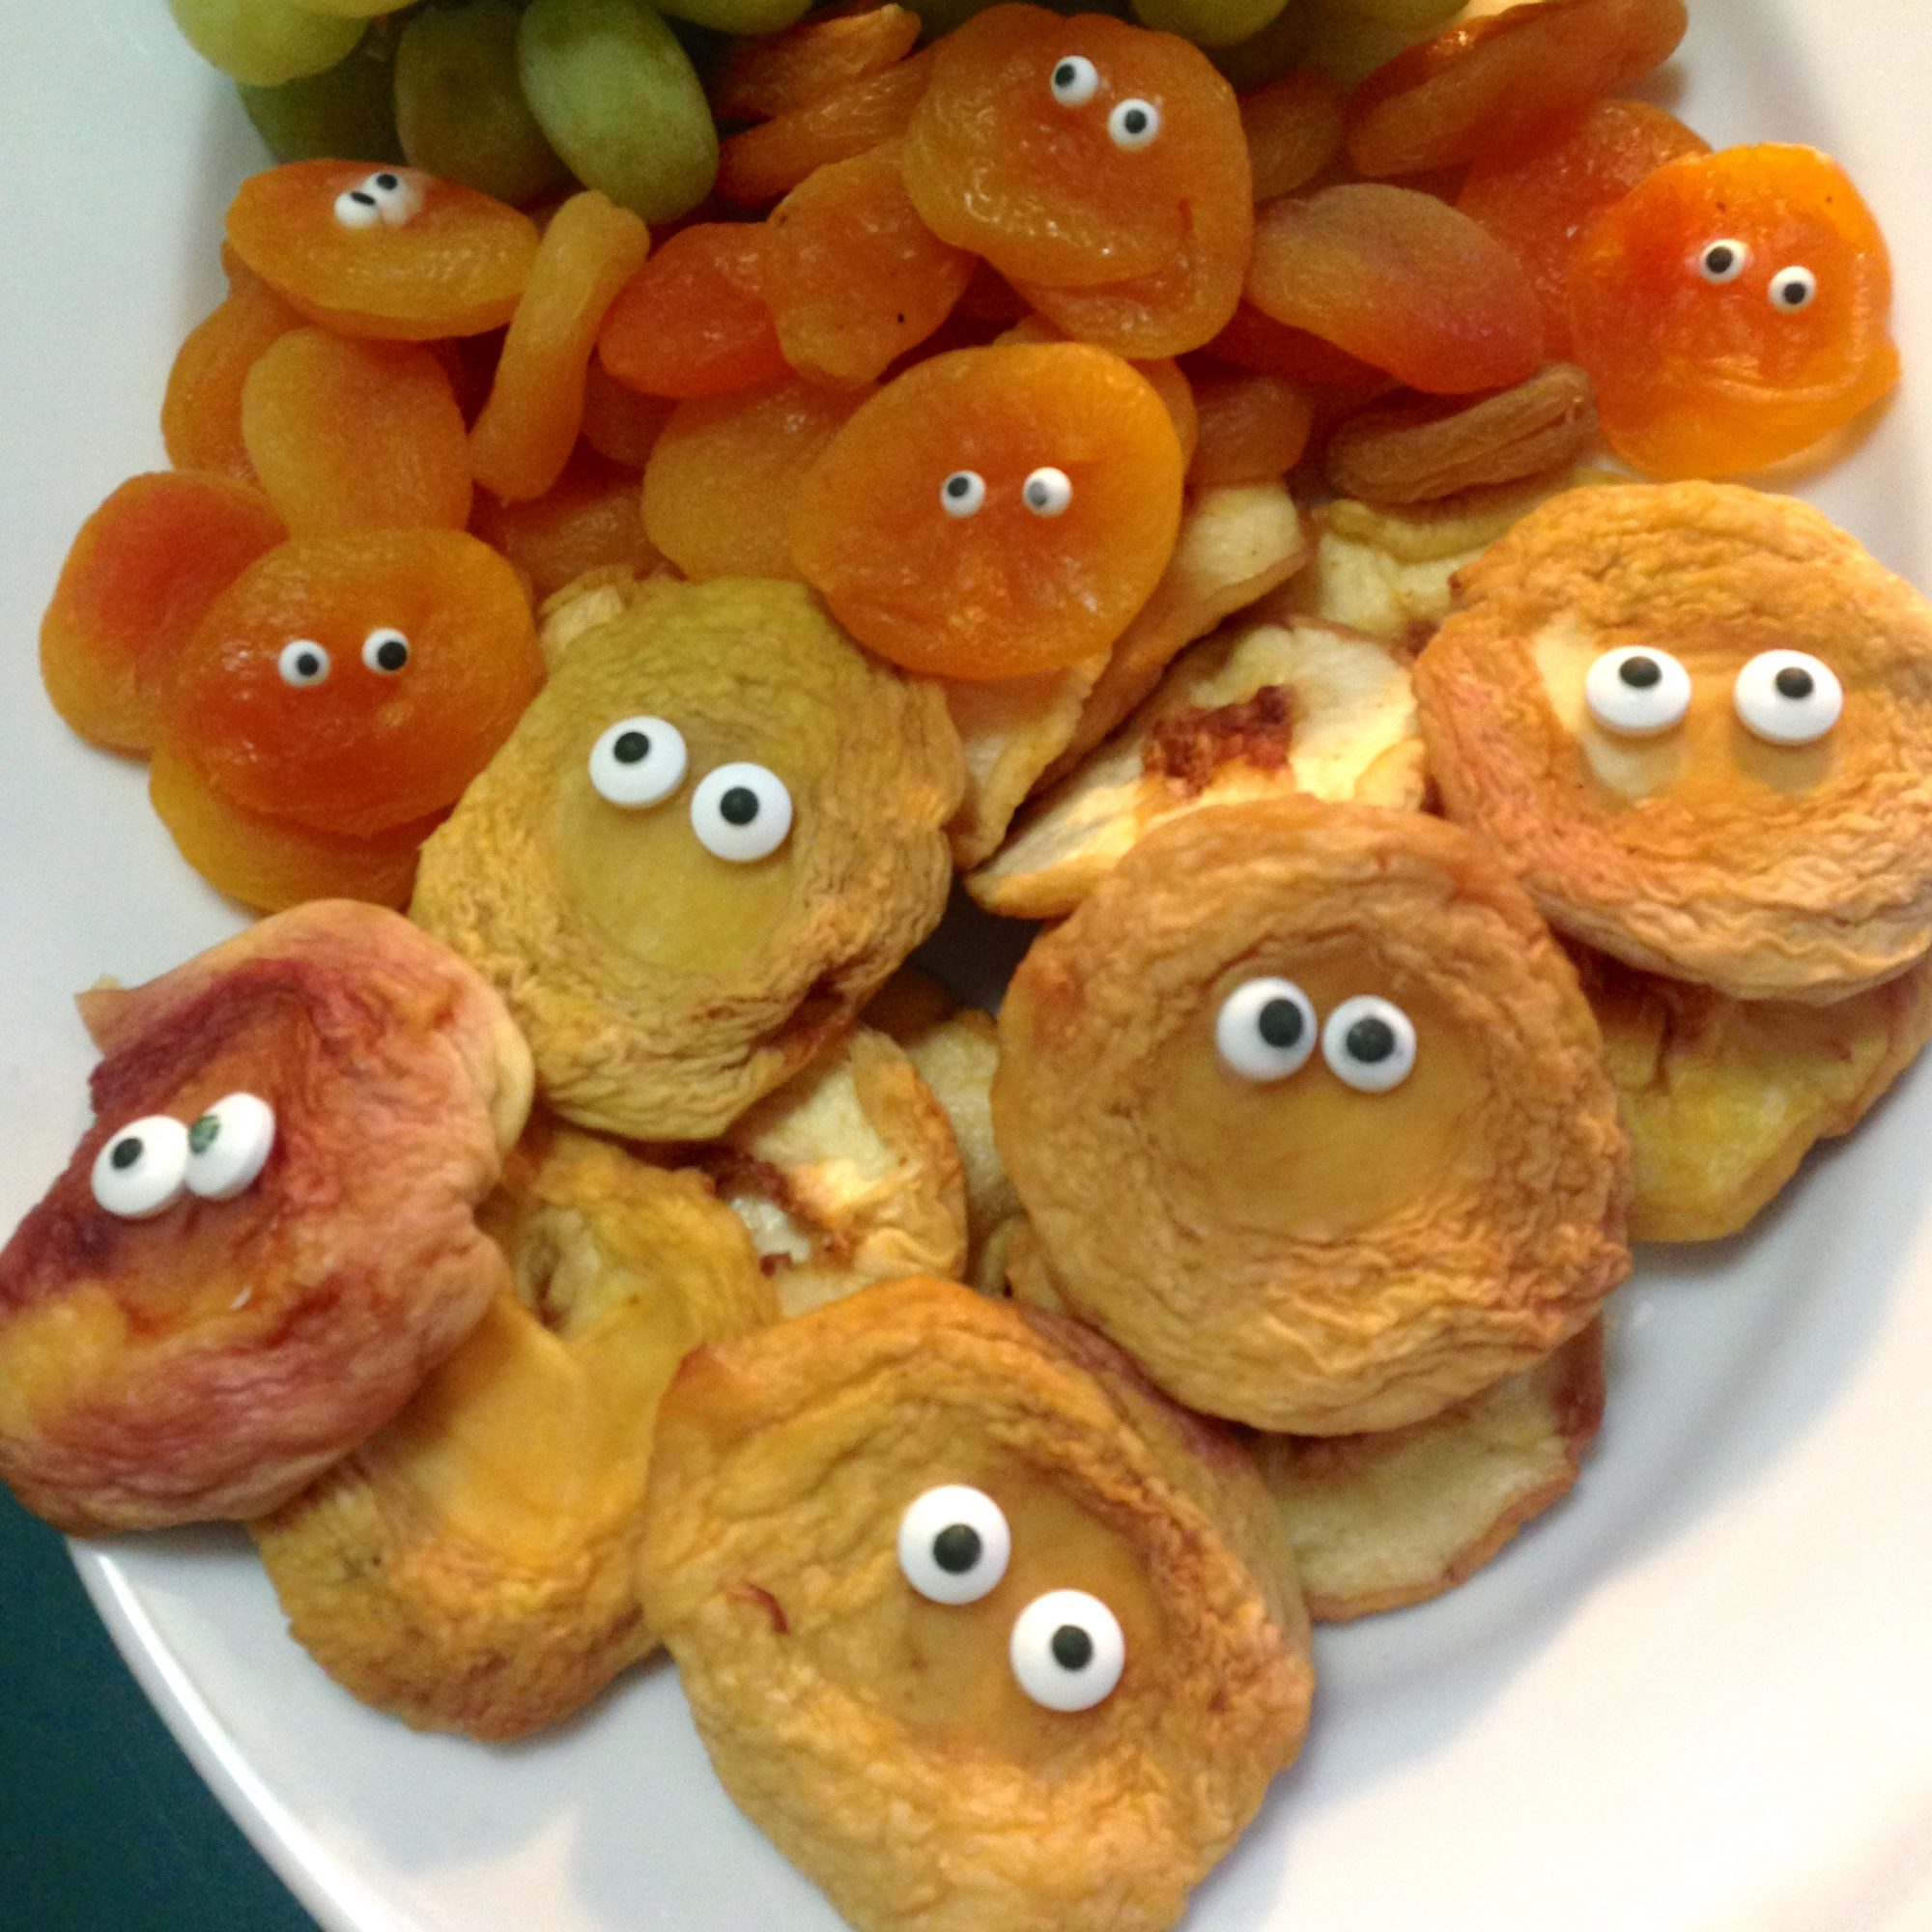 dried fruit snacks with edible eyes